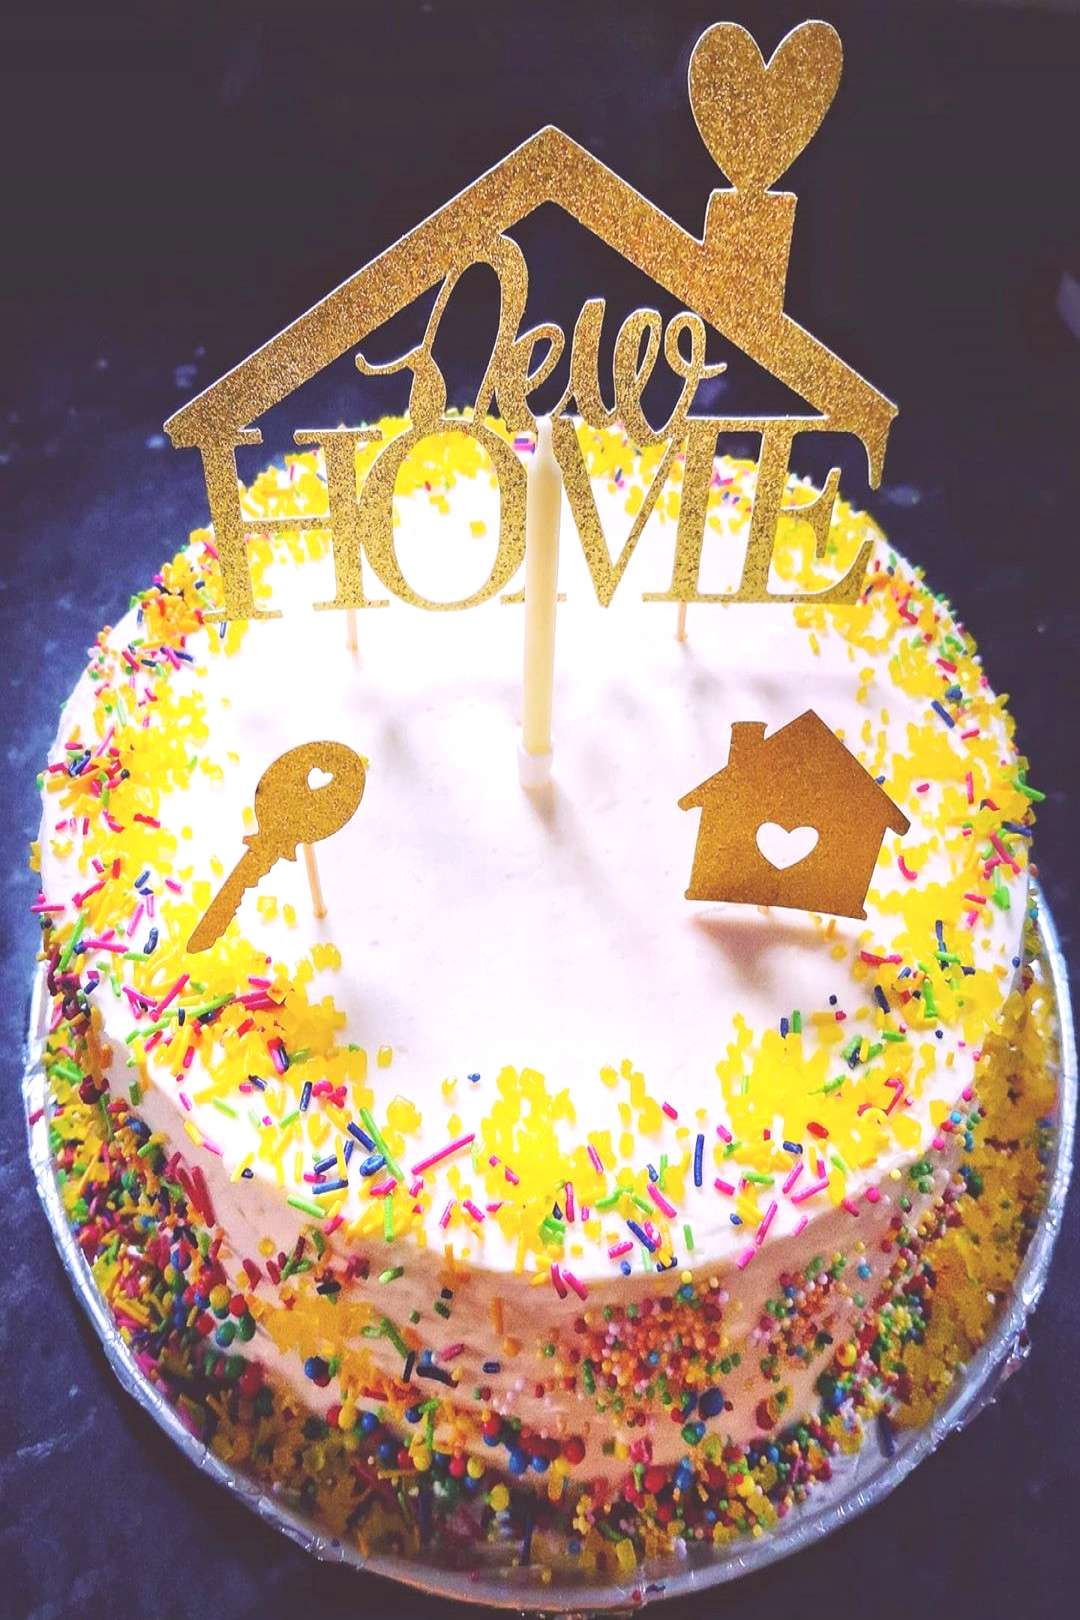 So this is the Sponge Cake that Yana and I made for our 1 year an